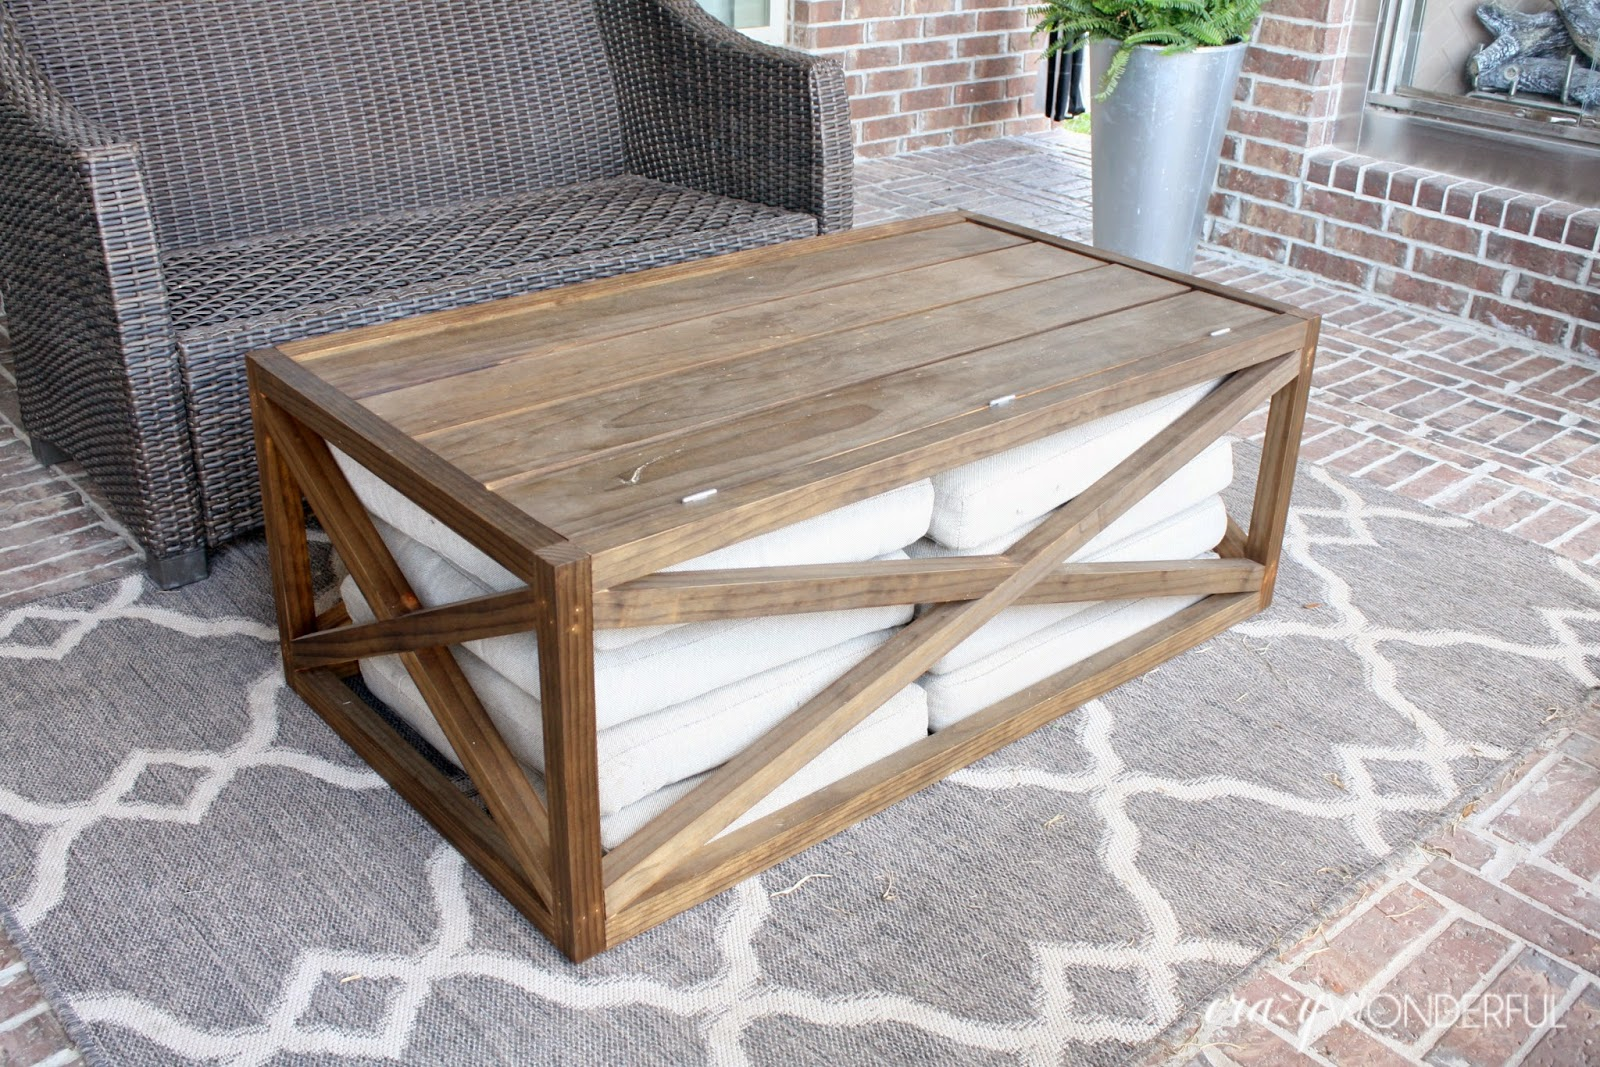 outdoor table probably perfect fun diy end plans coffee industrial ana white with storage crazy wonderful cooler round wood easy ideas pallet patio simple designs woodworking made